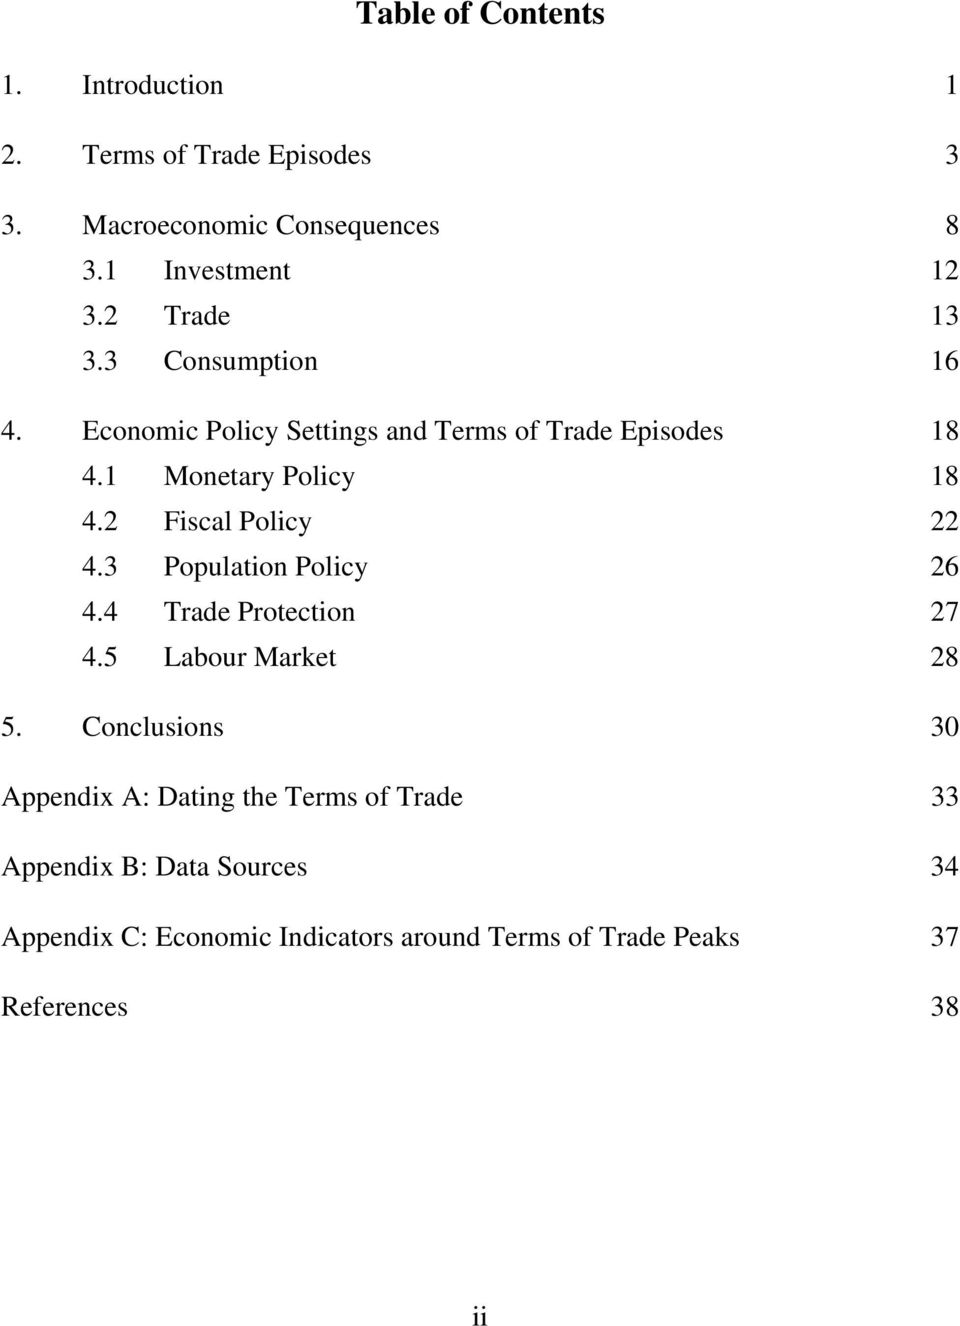 2 Fiscal Policy 22 4.3 Population Policy 26 4.4 Trade Protection 27 4.5 Labour Market 28 5.